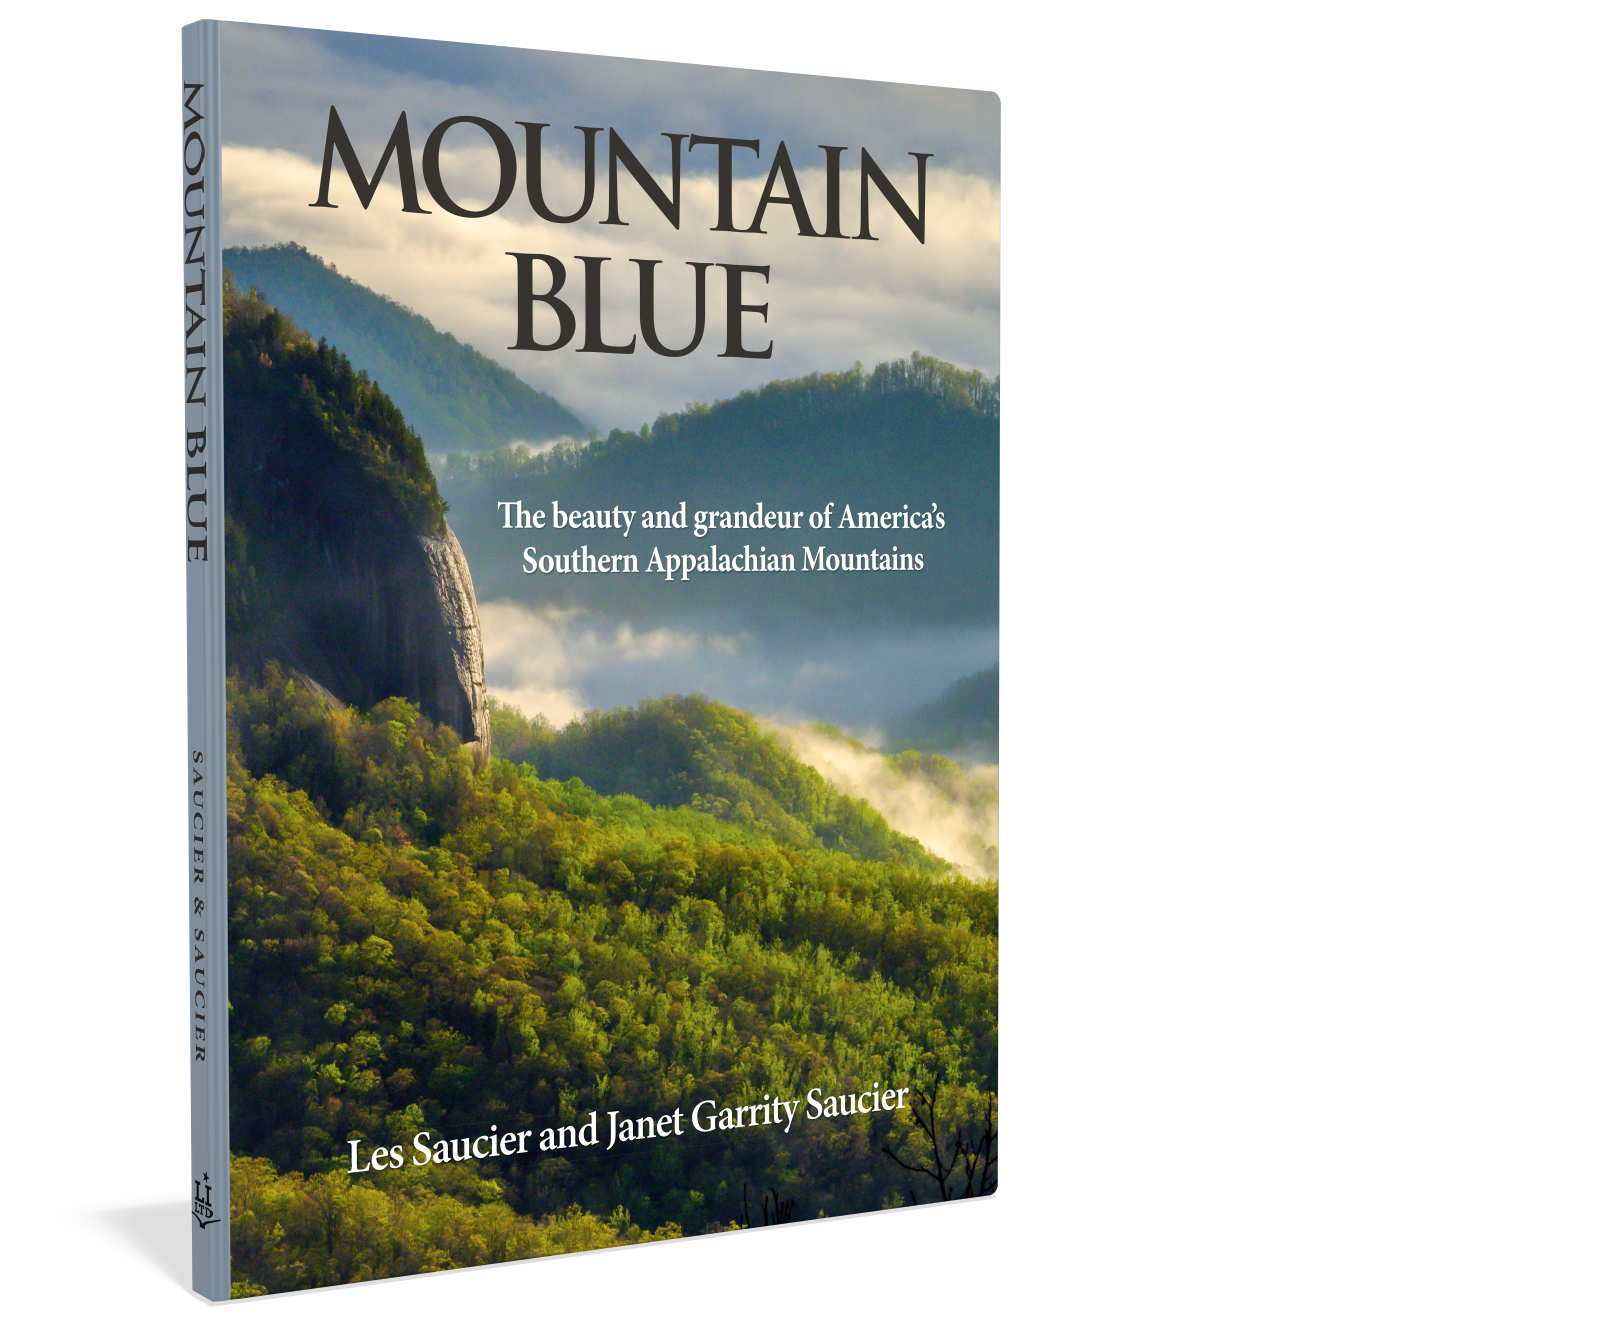 Cover: Mountain Blue the beauty and grandeur of America's Souther Appalachian MountainsLes Saucier and Janet Garrity Saucier Starbooks